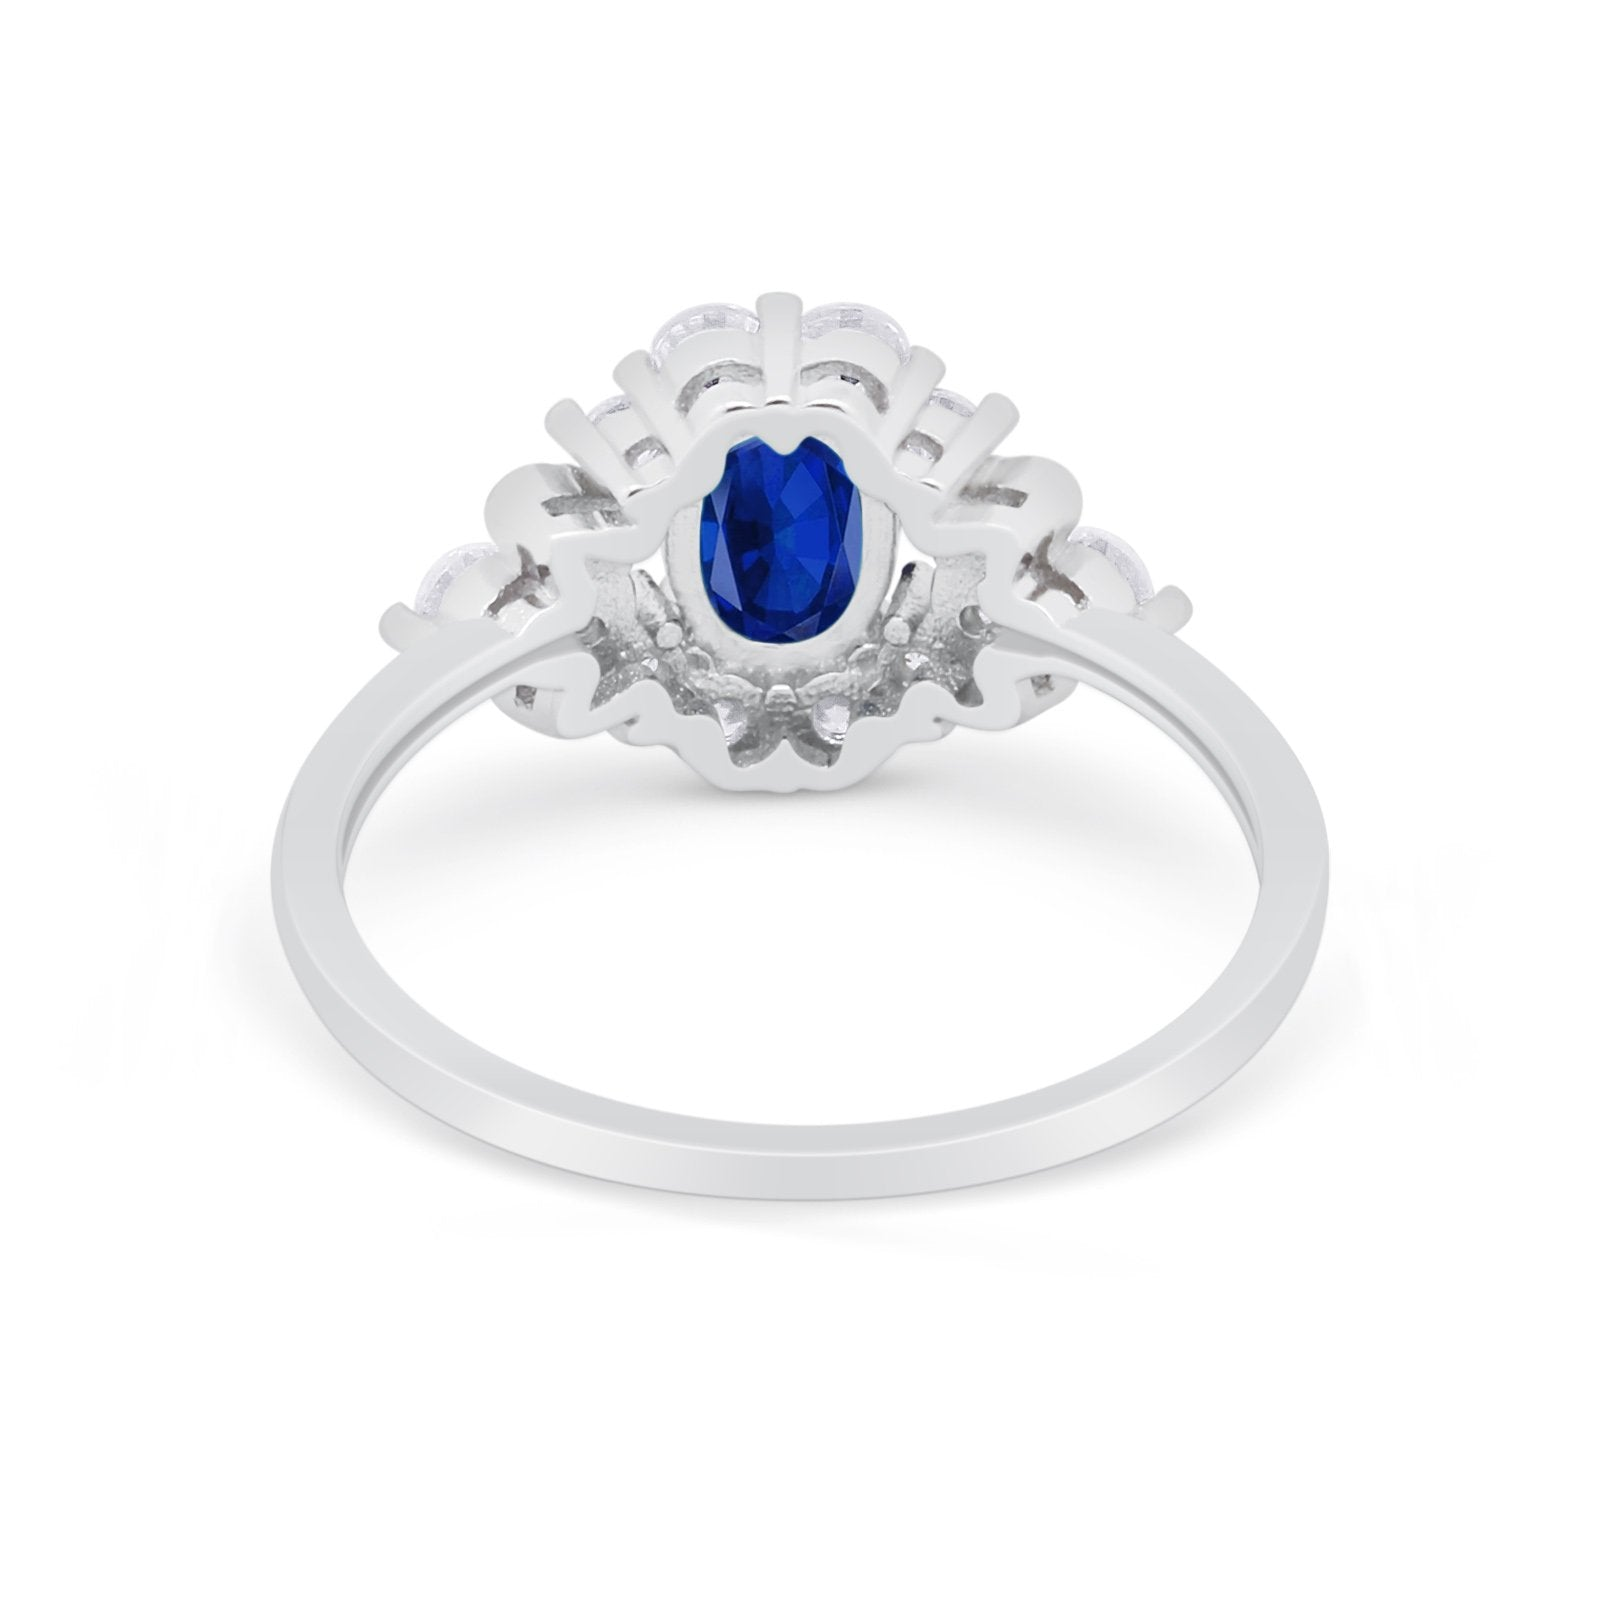 Oval Wedding Ring Vintage Art Deco Round Simulated Blue Sapphire CZ 925 Sterling Silver